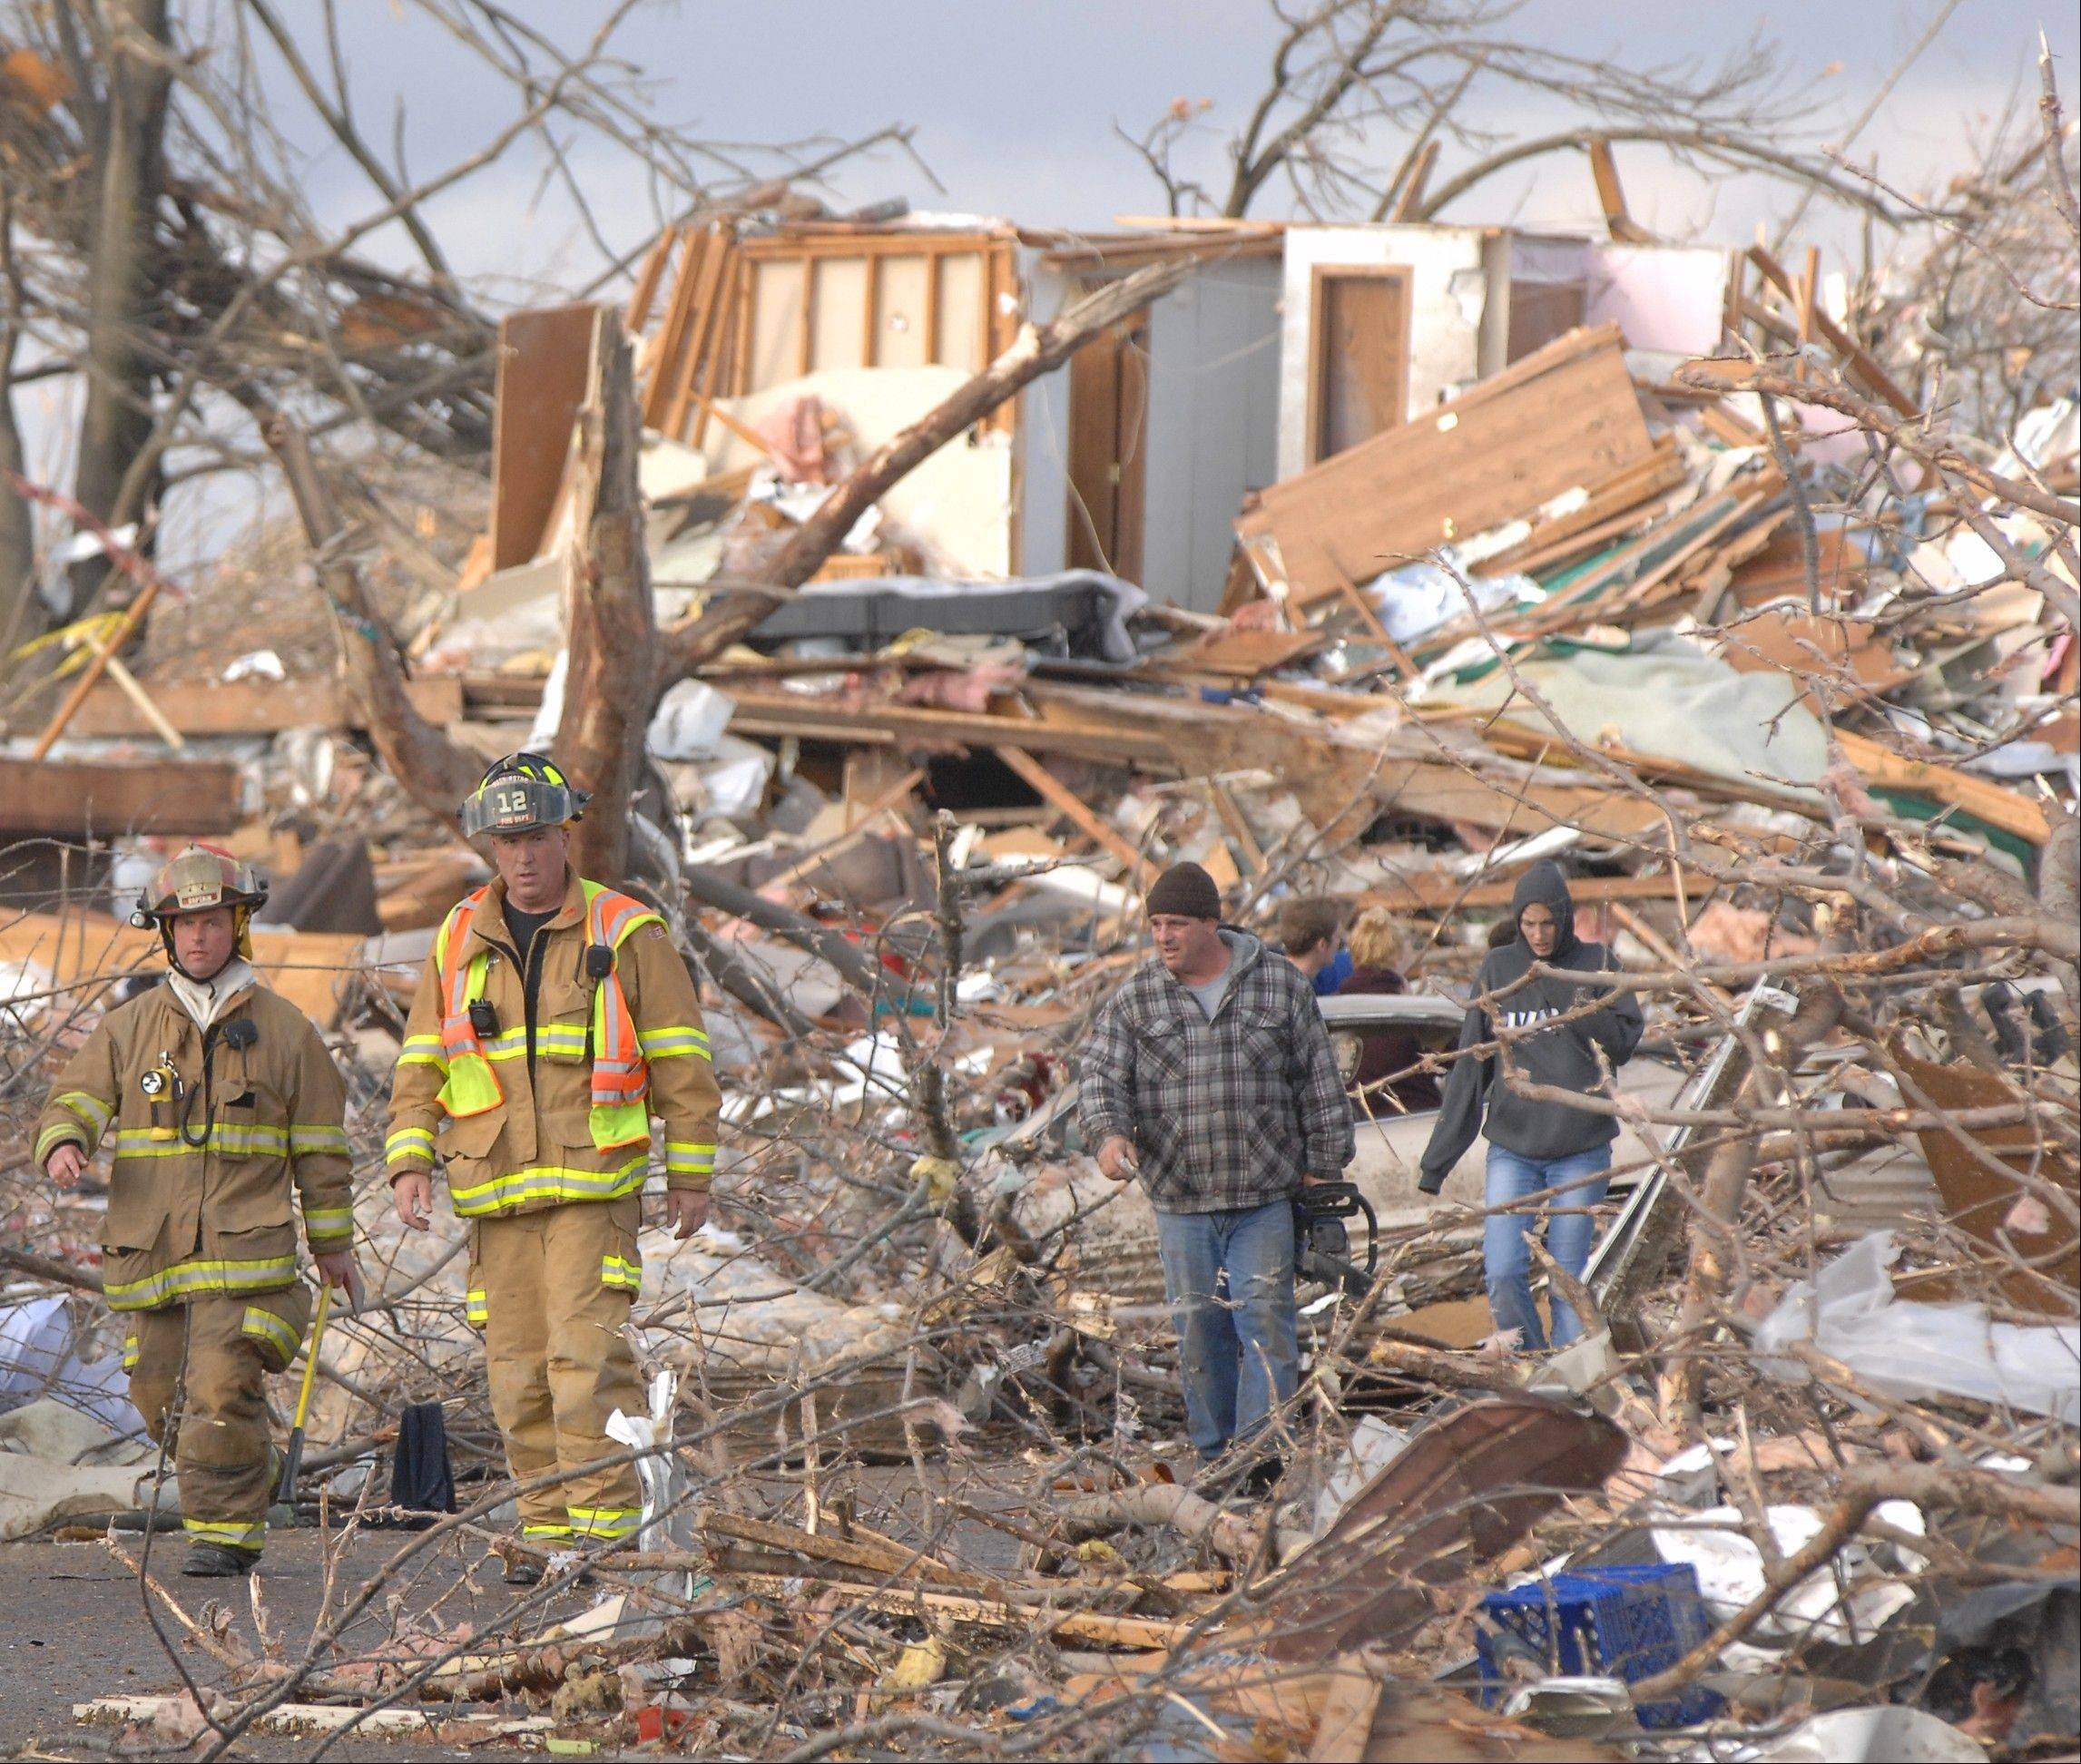 Washington firefighters survey Devonshire Street on the North side of Washington, Ill., Sunday, Nov. 17, 2013. Intense thunderstorms and tornadoes swept across the Midwest, causing extensive damage in several central Illinois communities while sending people to their basements for shelter.